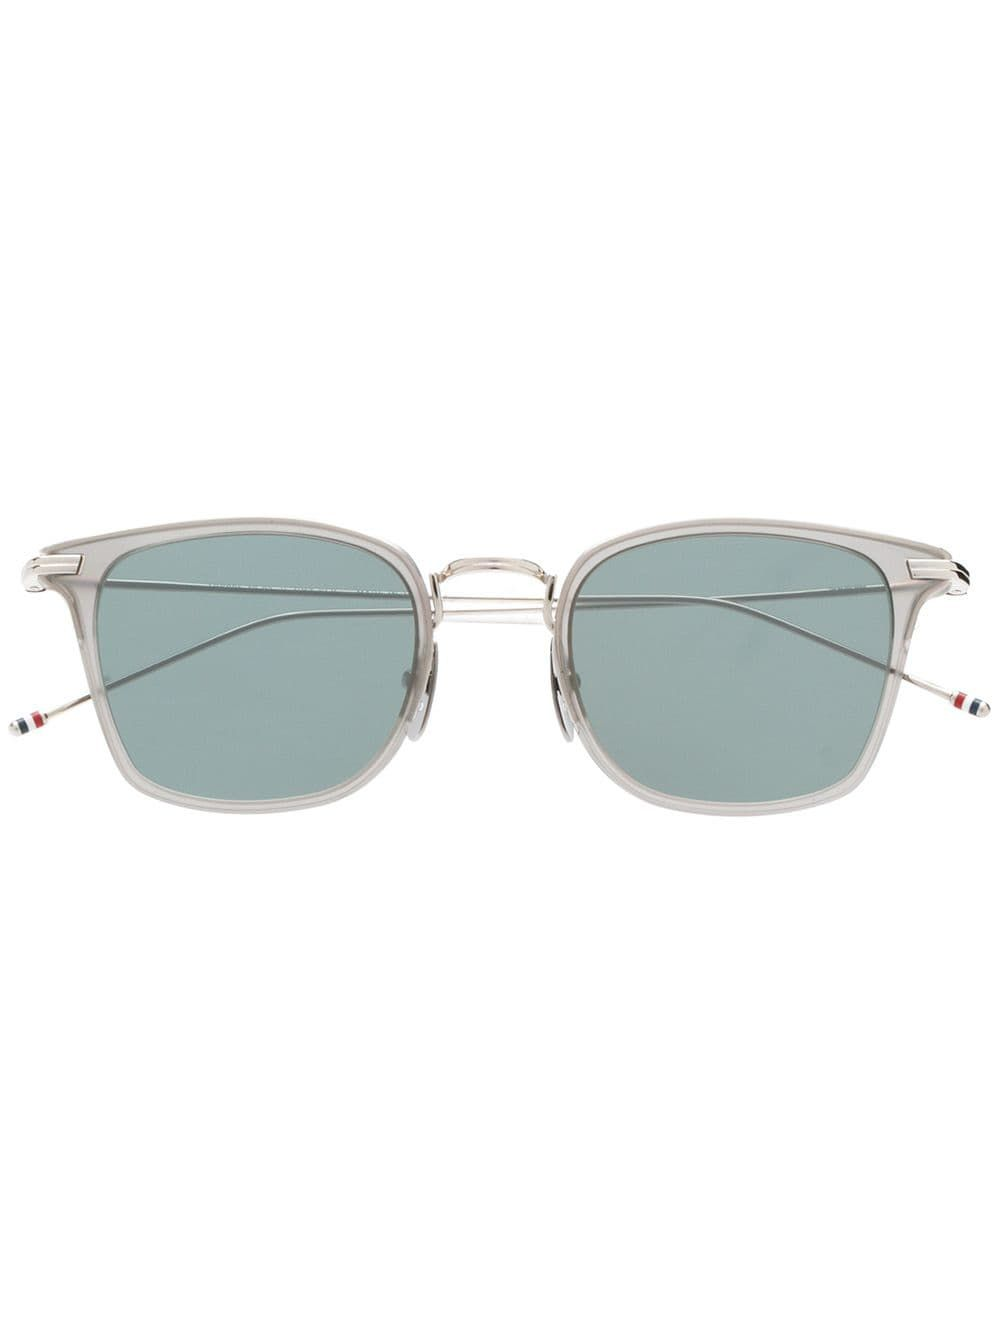 745a1aef1adf THOM BROWNE THOM BROWNE EYEWEAR SQUARE SHAPED SUNGLASSES - SILVER.   thombrowne